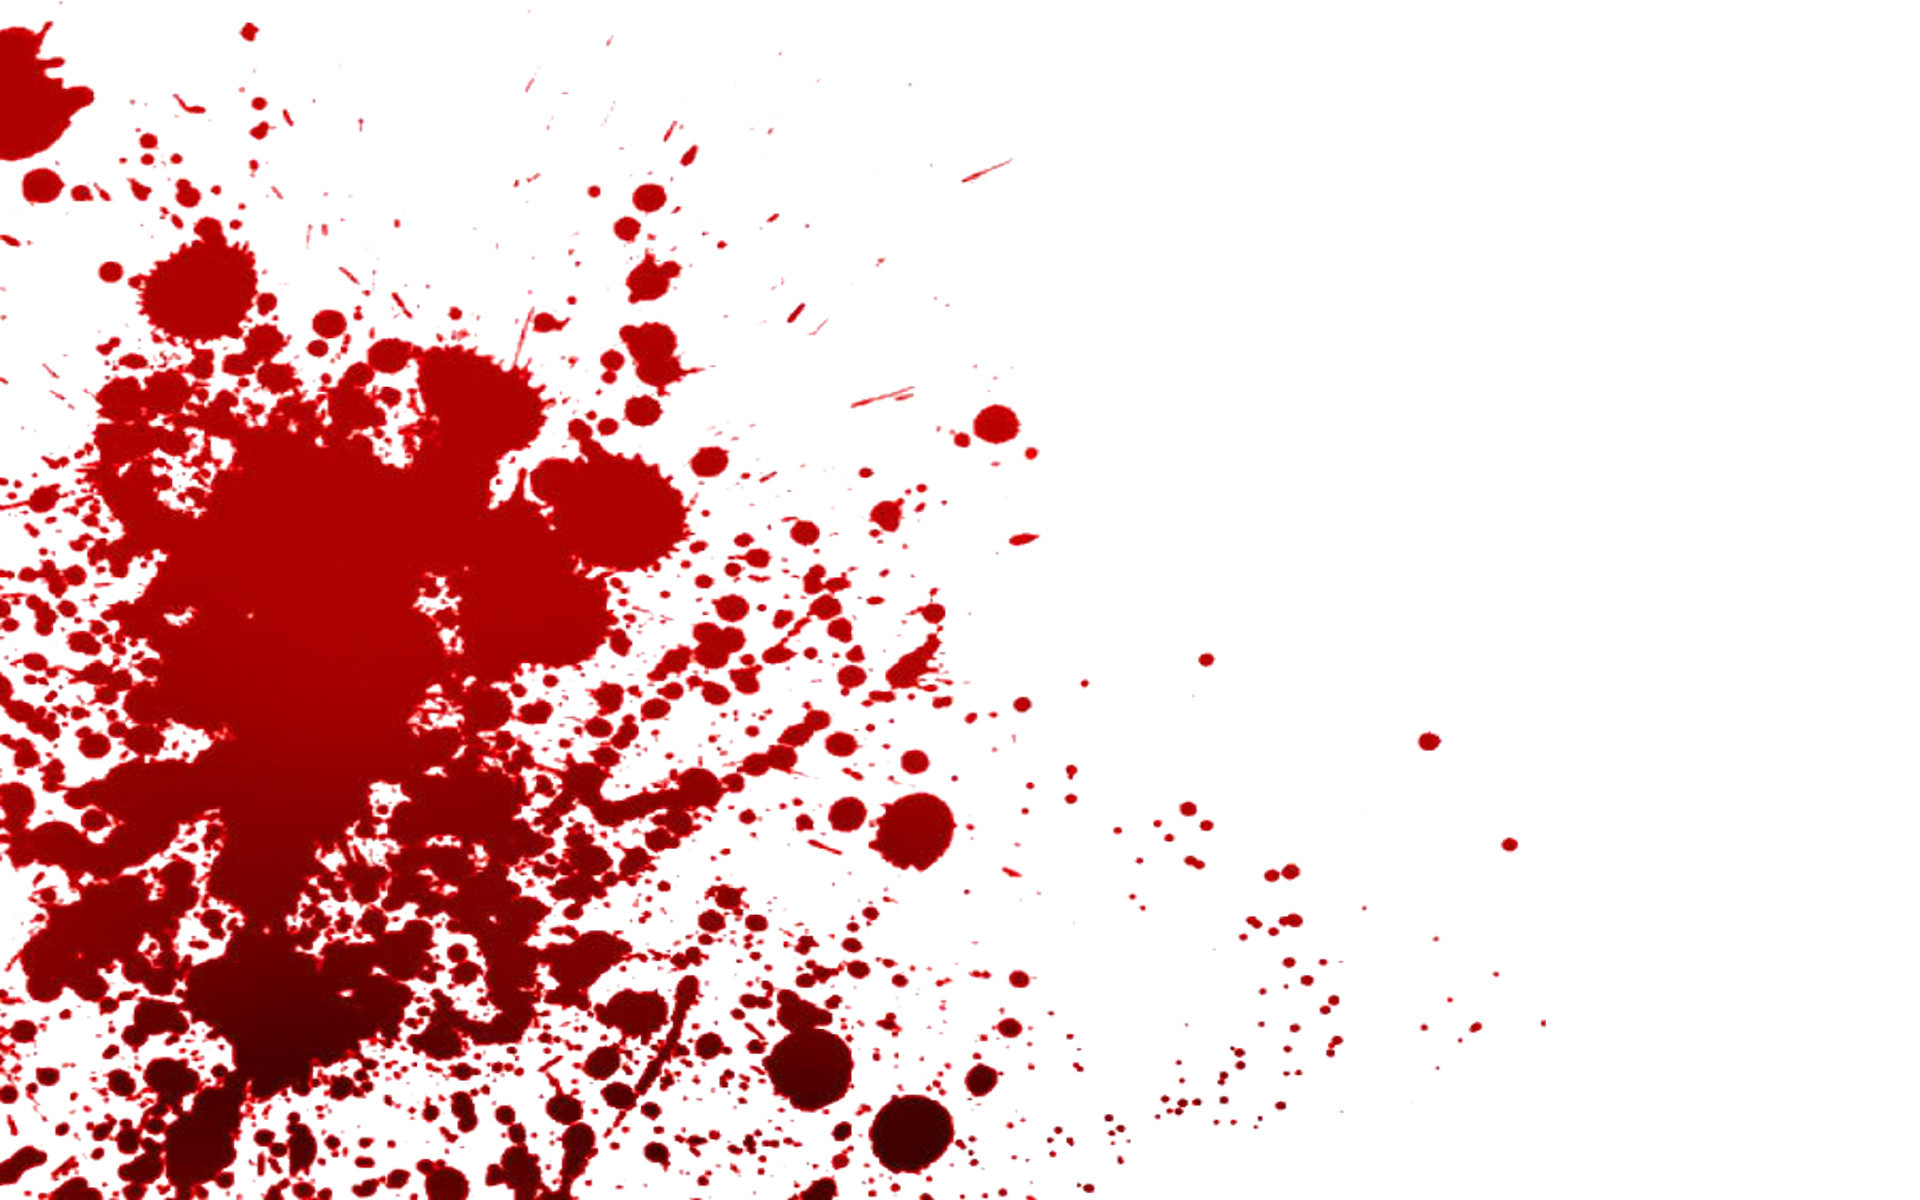 blood splattering